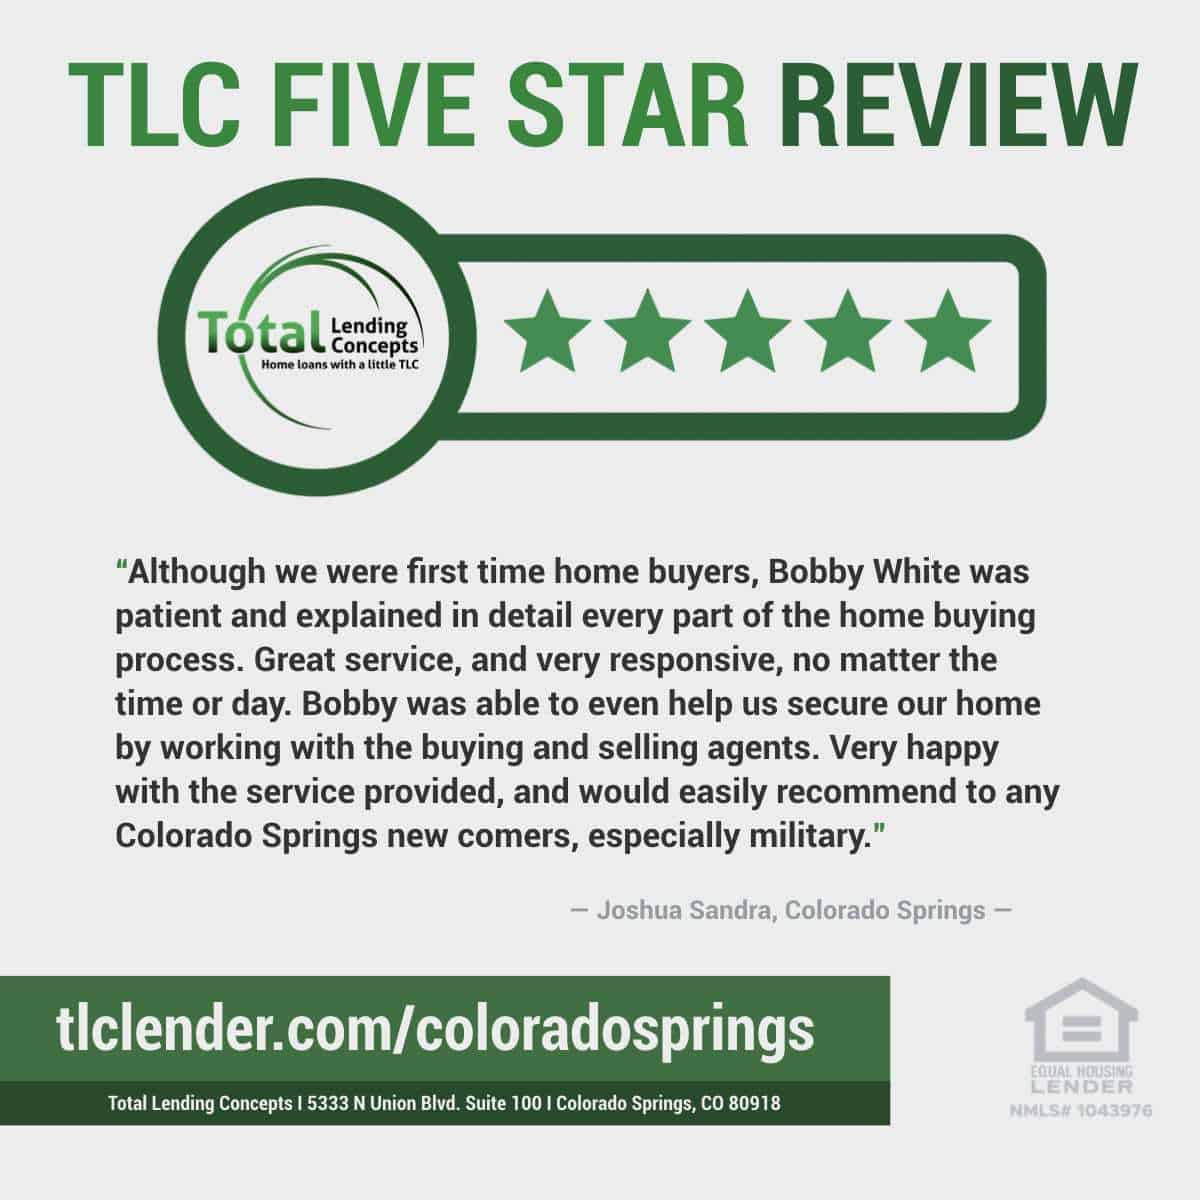 Total-Lending-Concepts-Five-Star-Review-Joshua-Sandra-in-Colorado-Springs-Colorado-for-Bobby-White-House-Loan